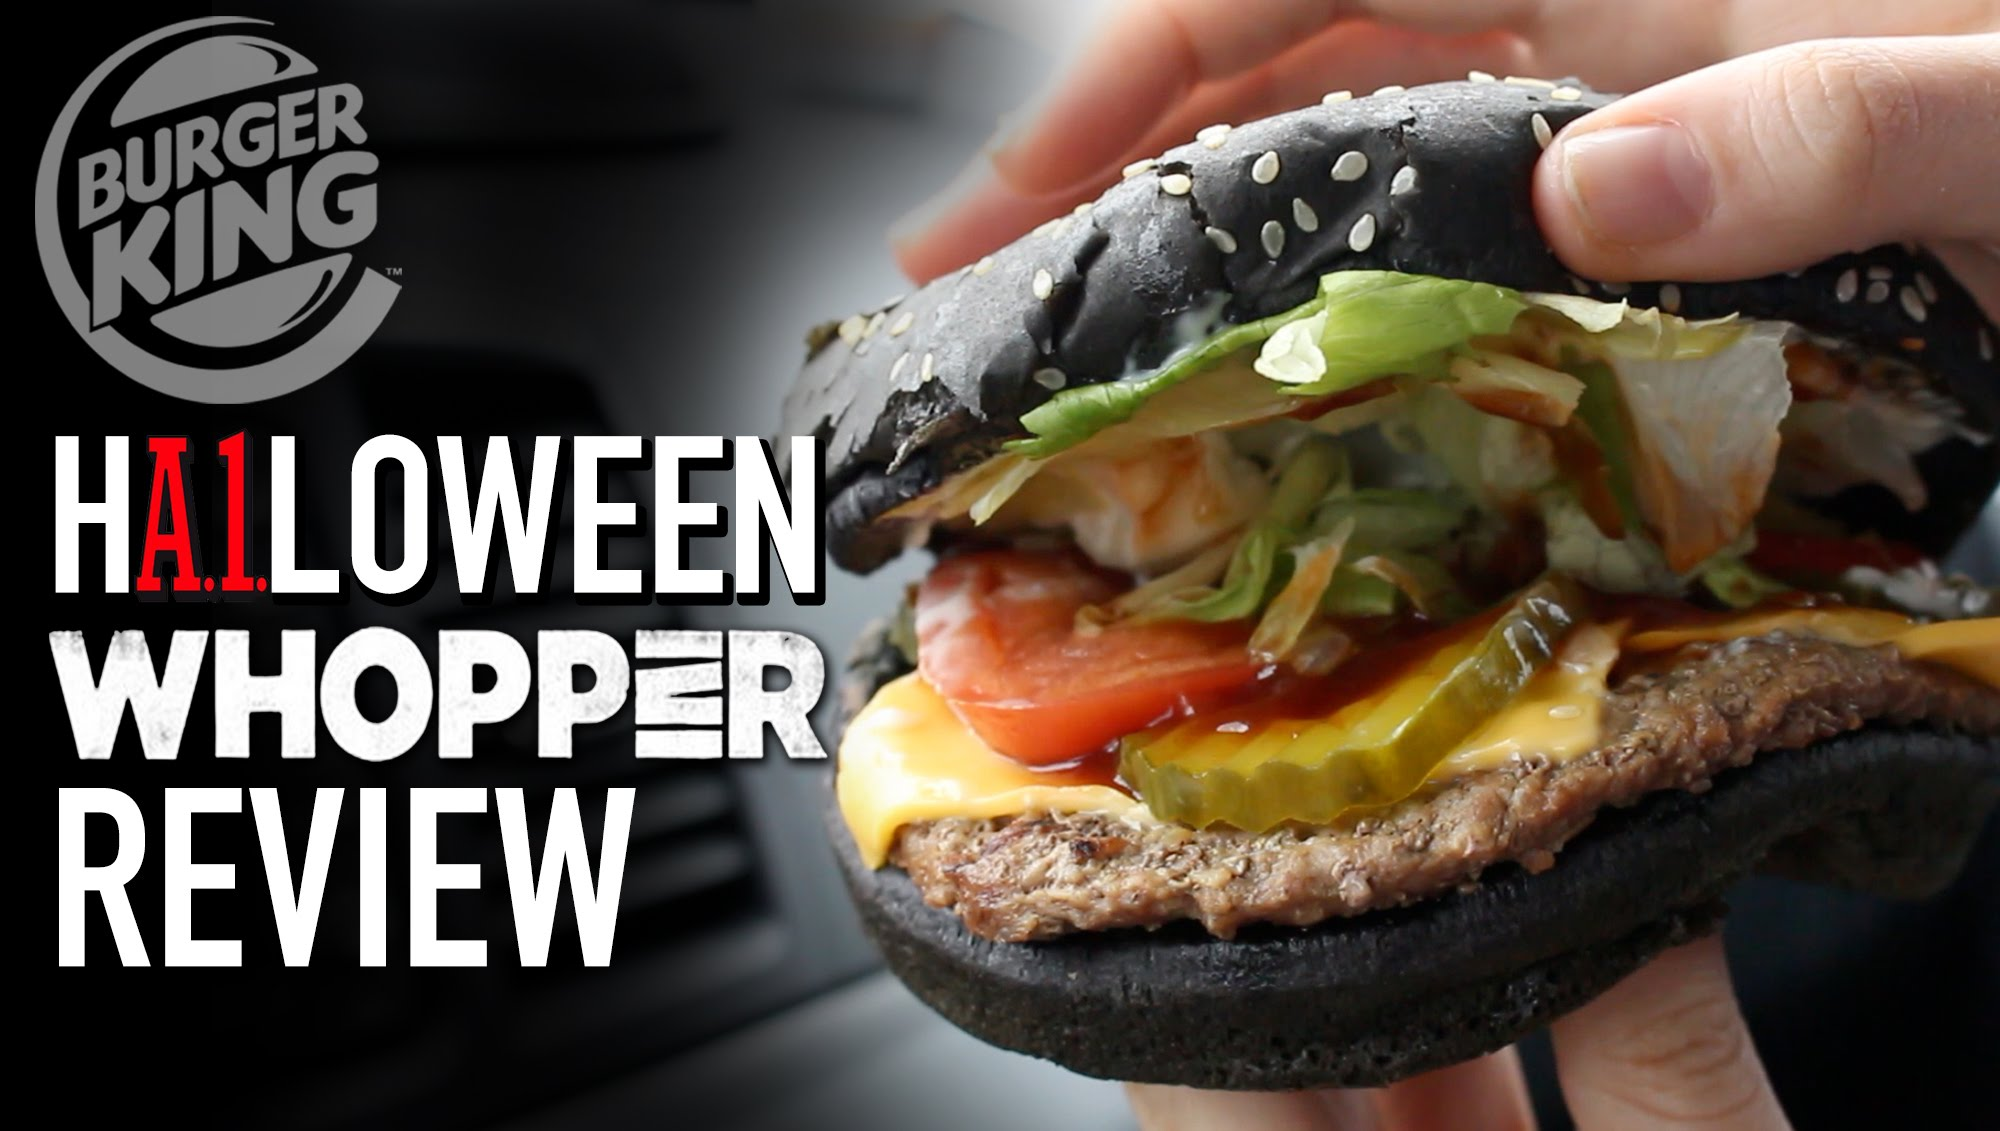 Burger King Halloween A1 Whopper Review   HellthyJunkFood   diy.fyi